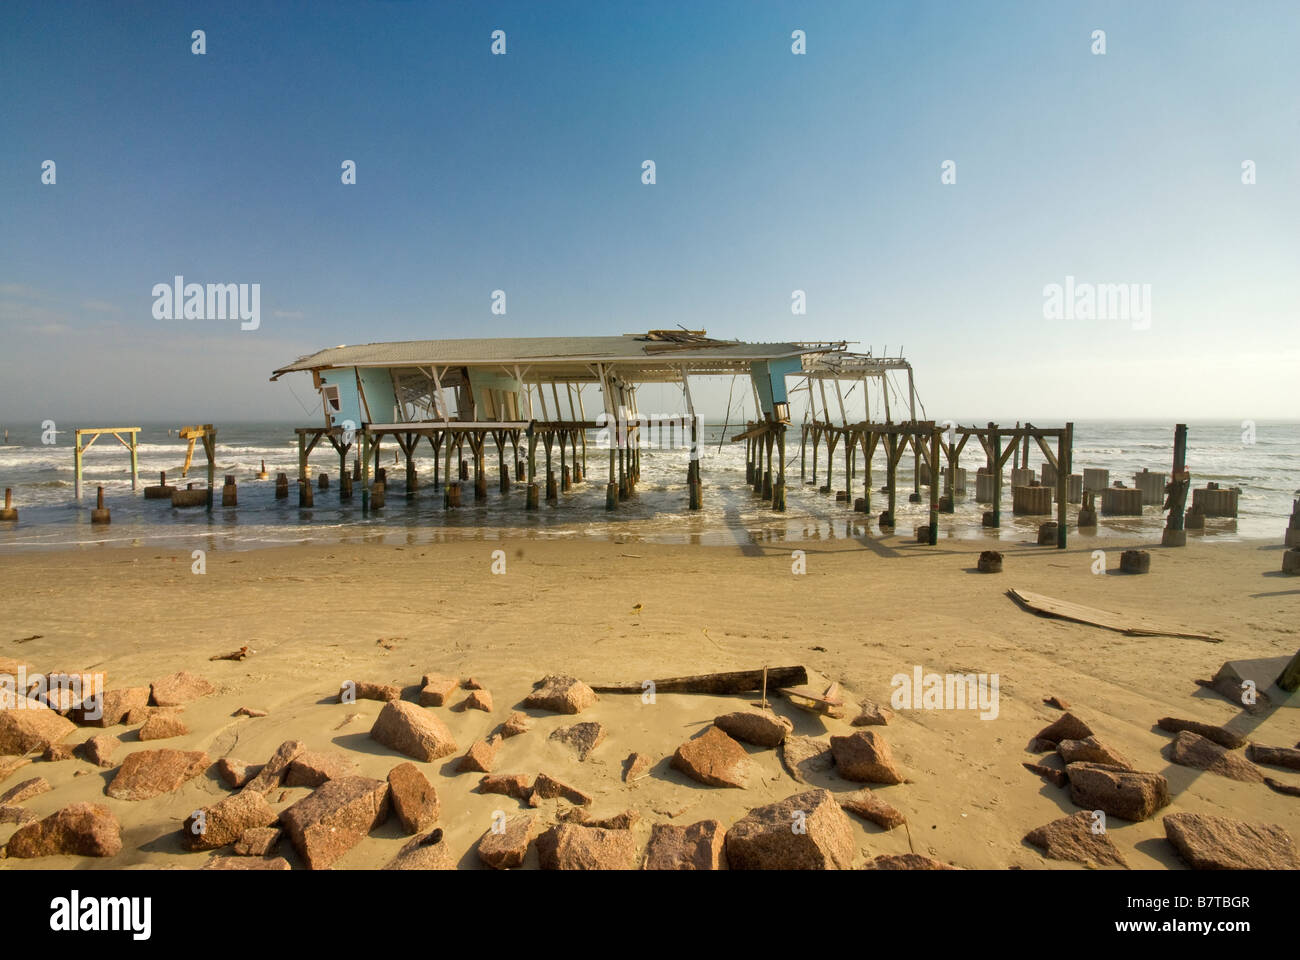 Remains of souvenir shop destroyed by Hurricane Ike in 2008 on beach at Seawall Boulevard in Galveston Texas USA - Stock Image